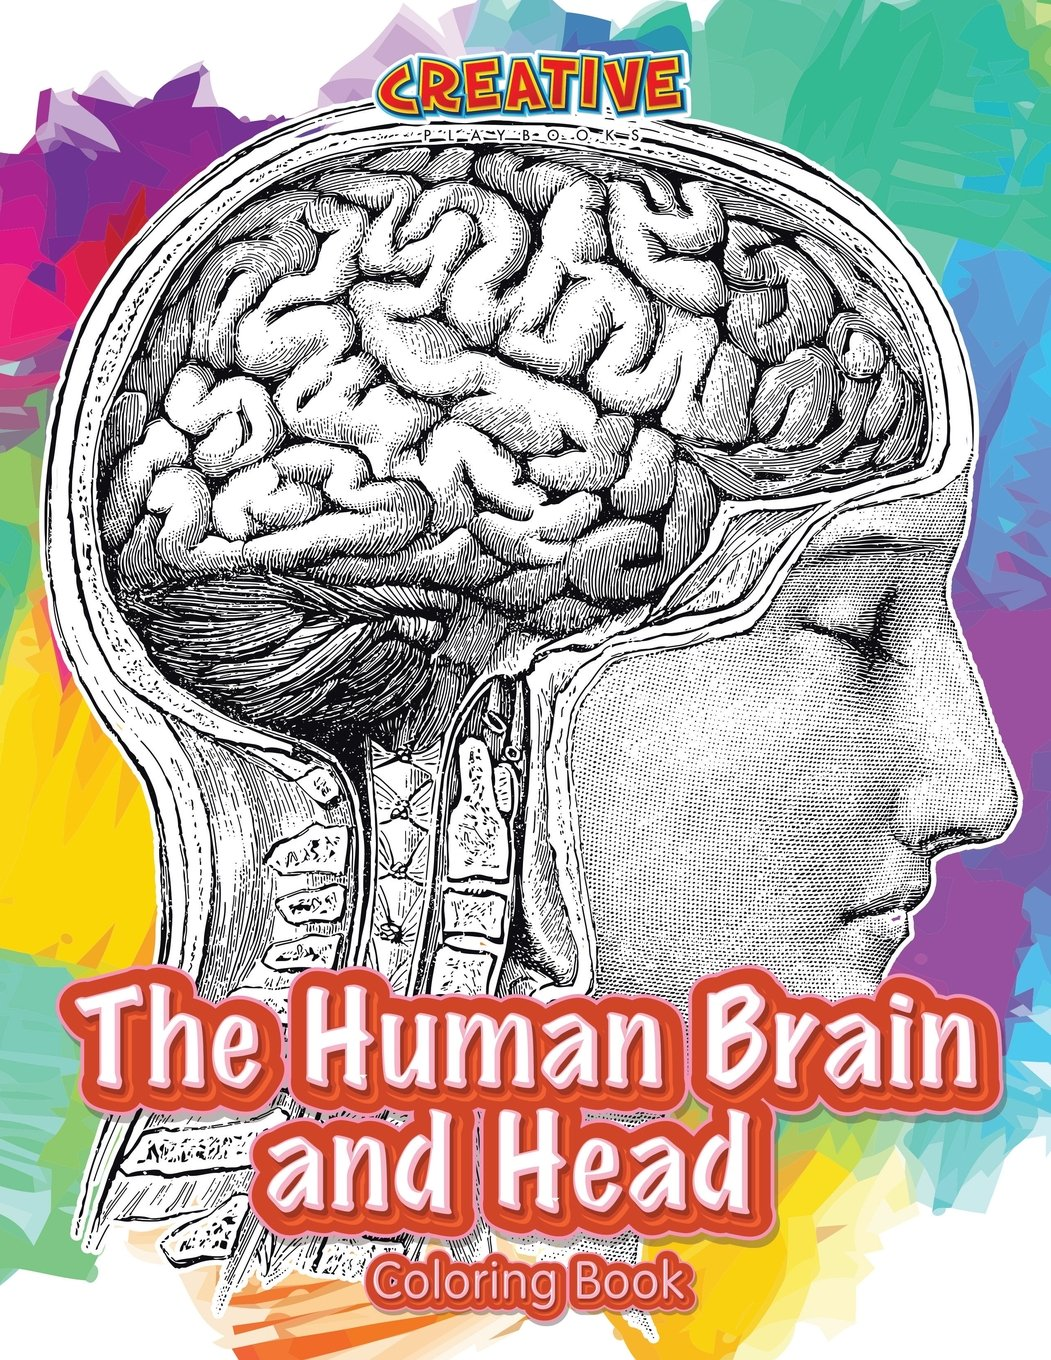 The Human Brain and Head Coloring Book: Creative Playbooks ...